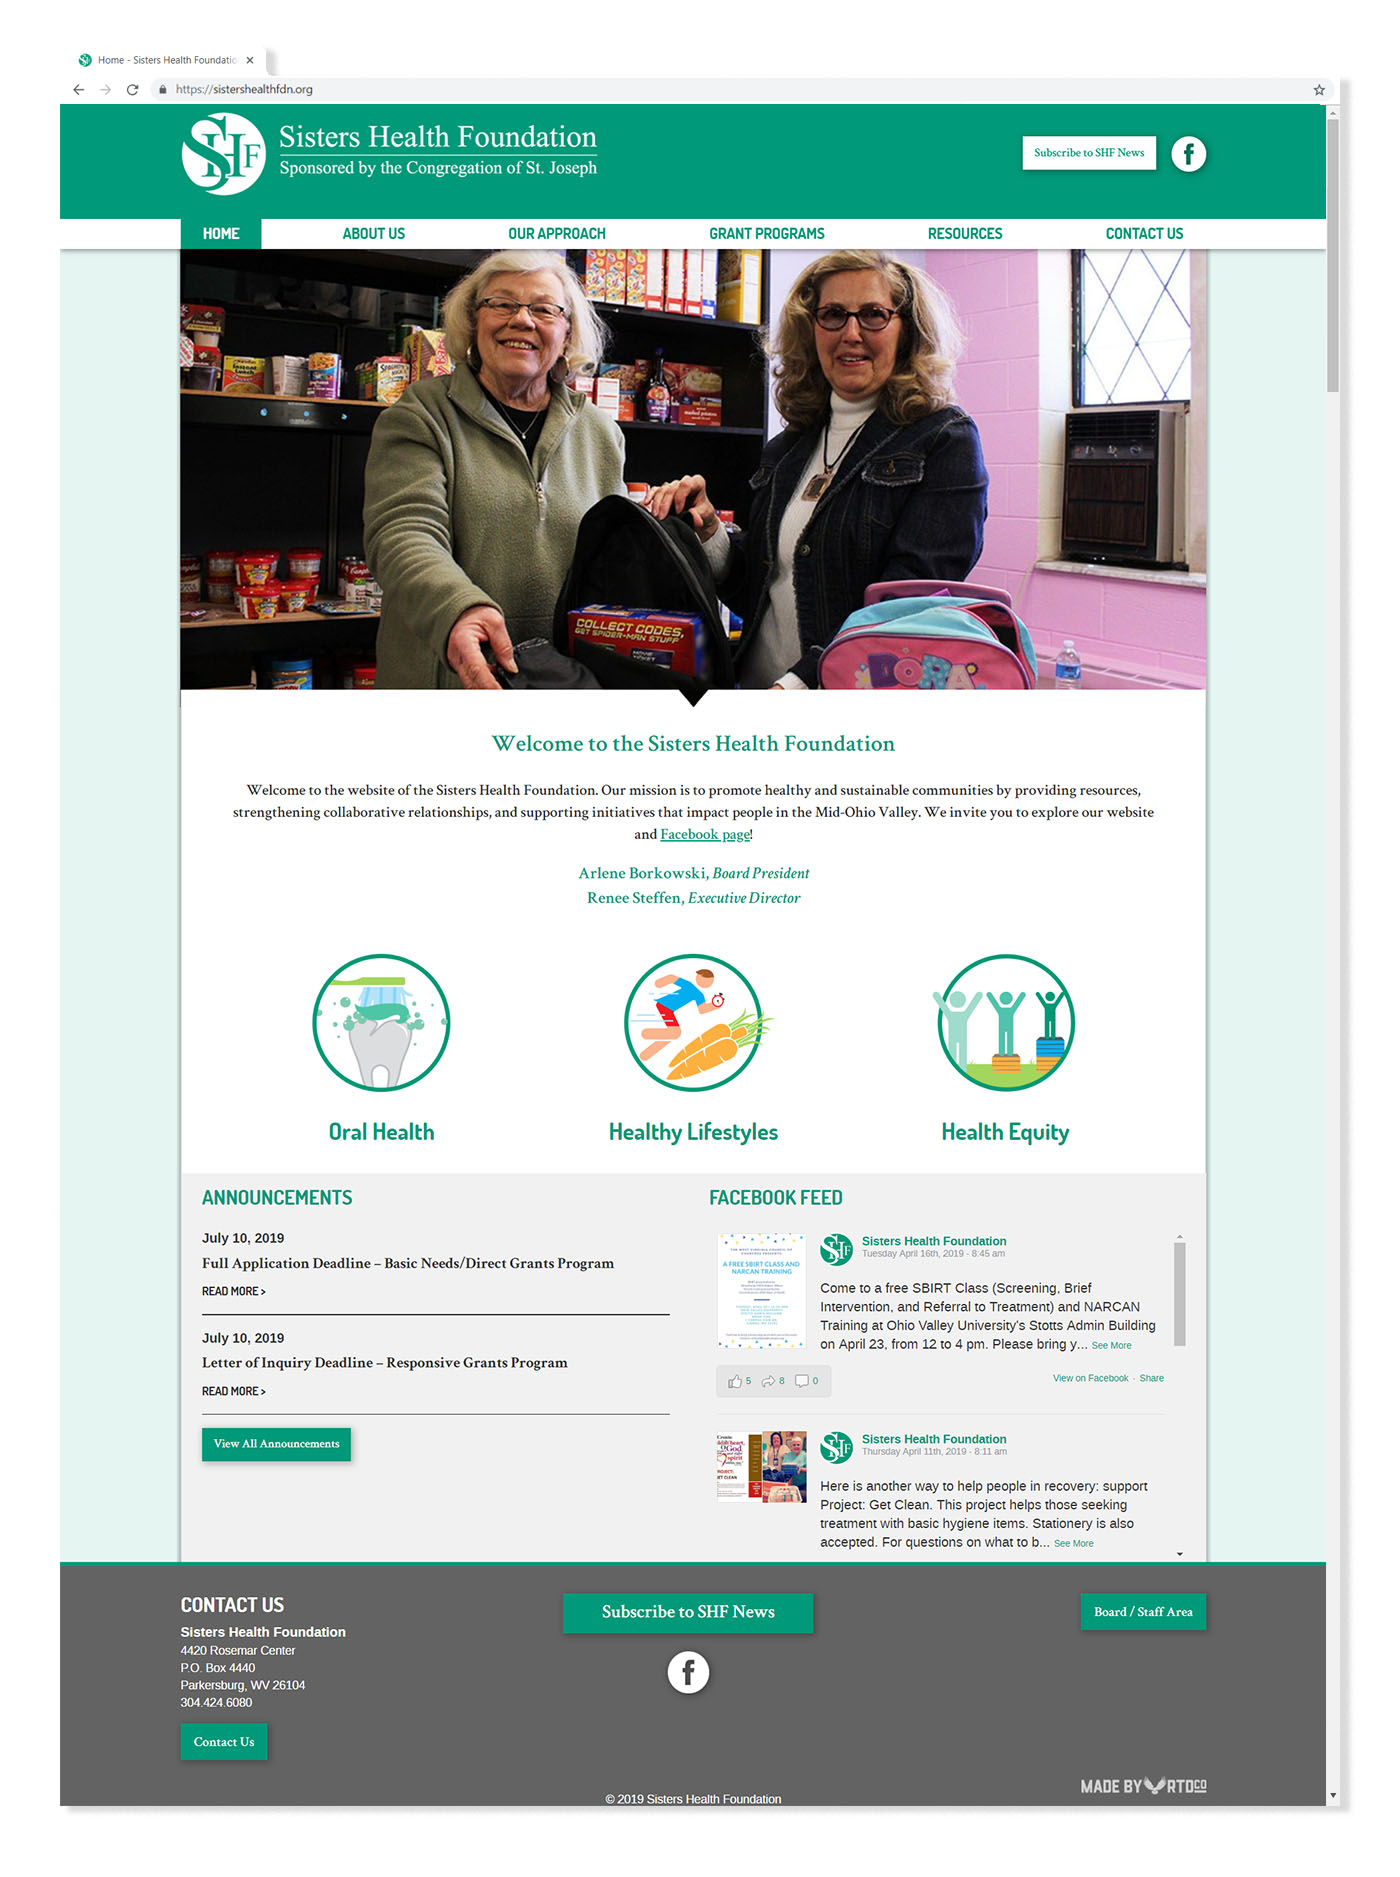 Sisters Health Foundation website homepage mockup by Red Tail Design.